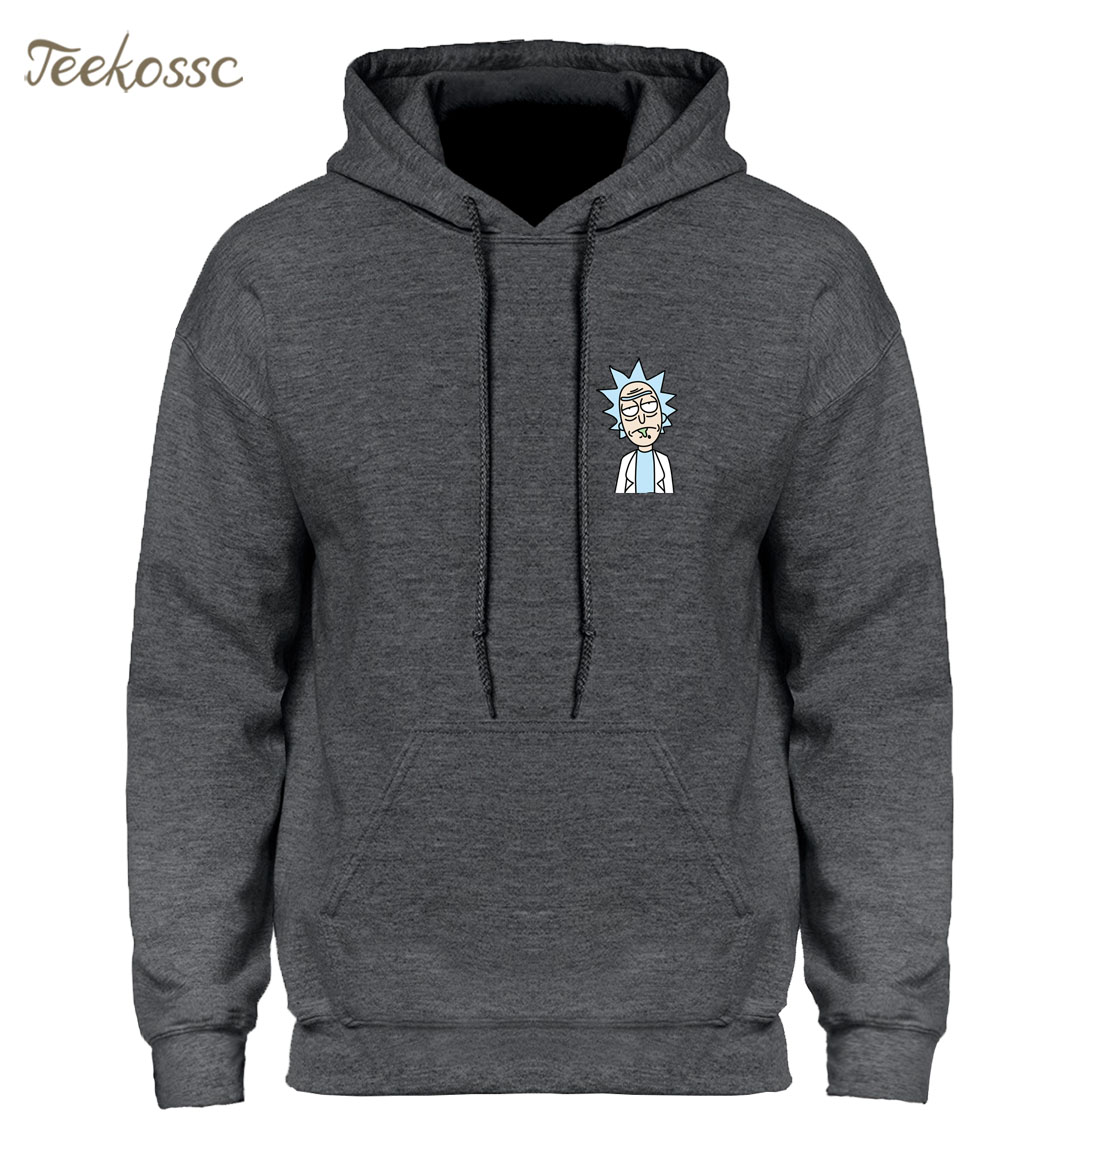 Rick And Morty Hoodie Hoodies Sweatshirt Men 2018 Winter Autumn Hooded Hoody Cartoon New Fashion Casual Loose Homme Rick Jacket